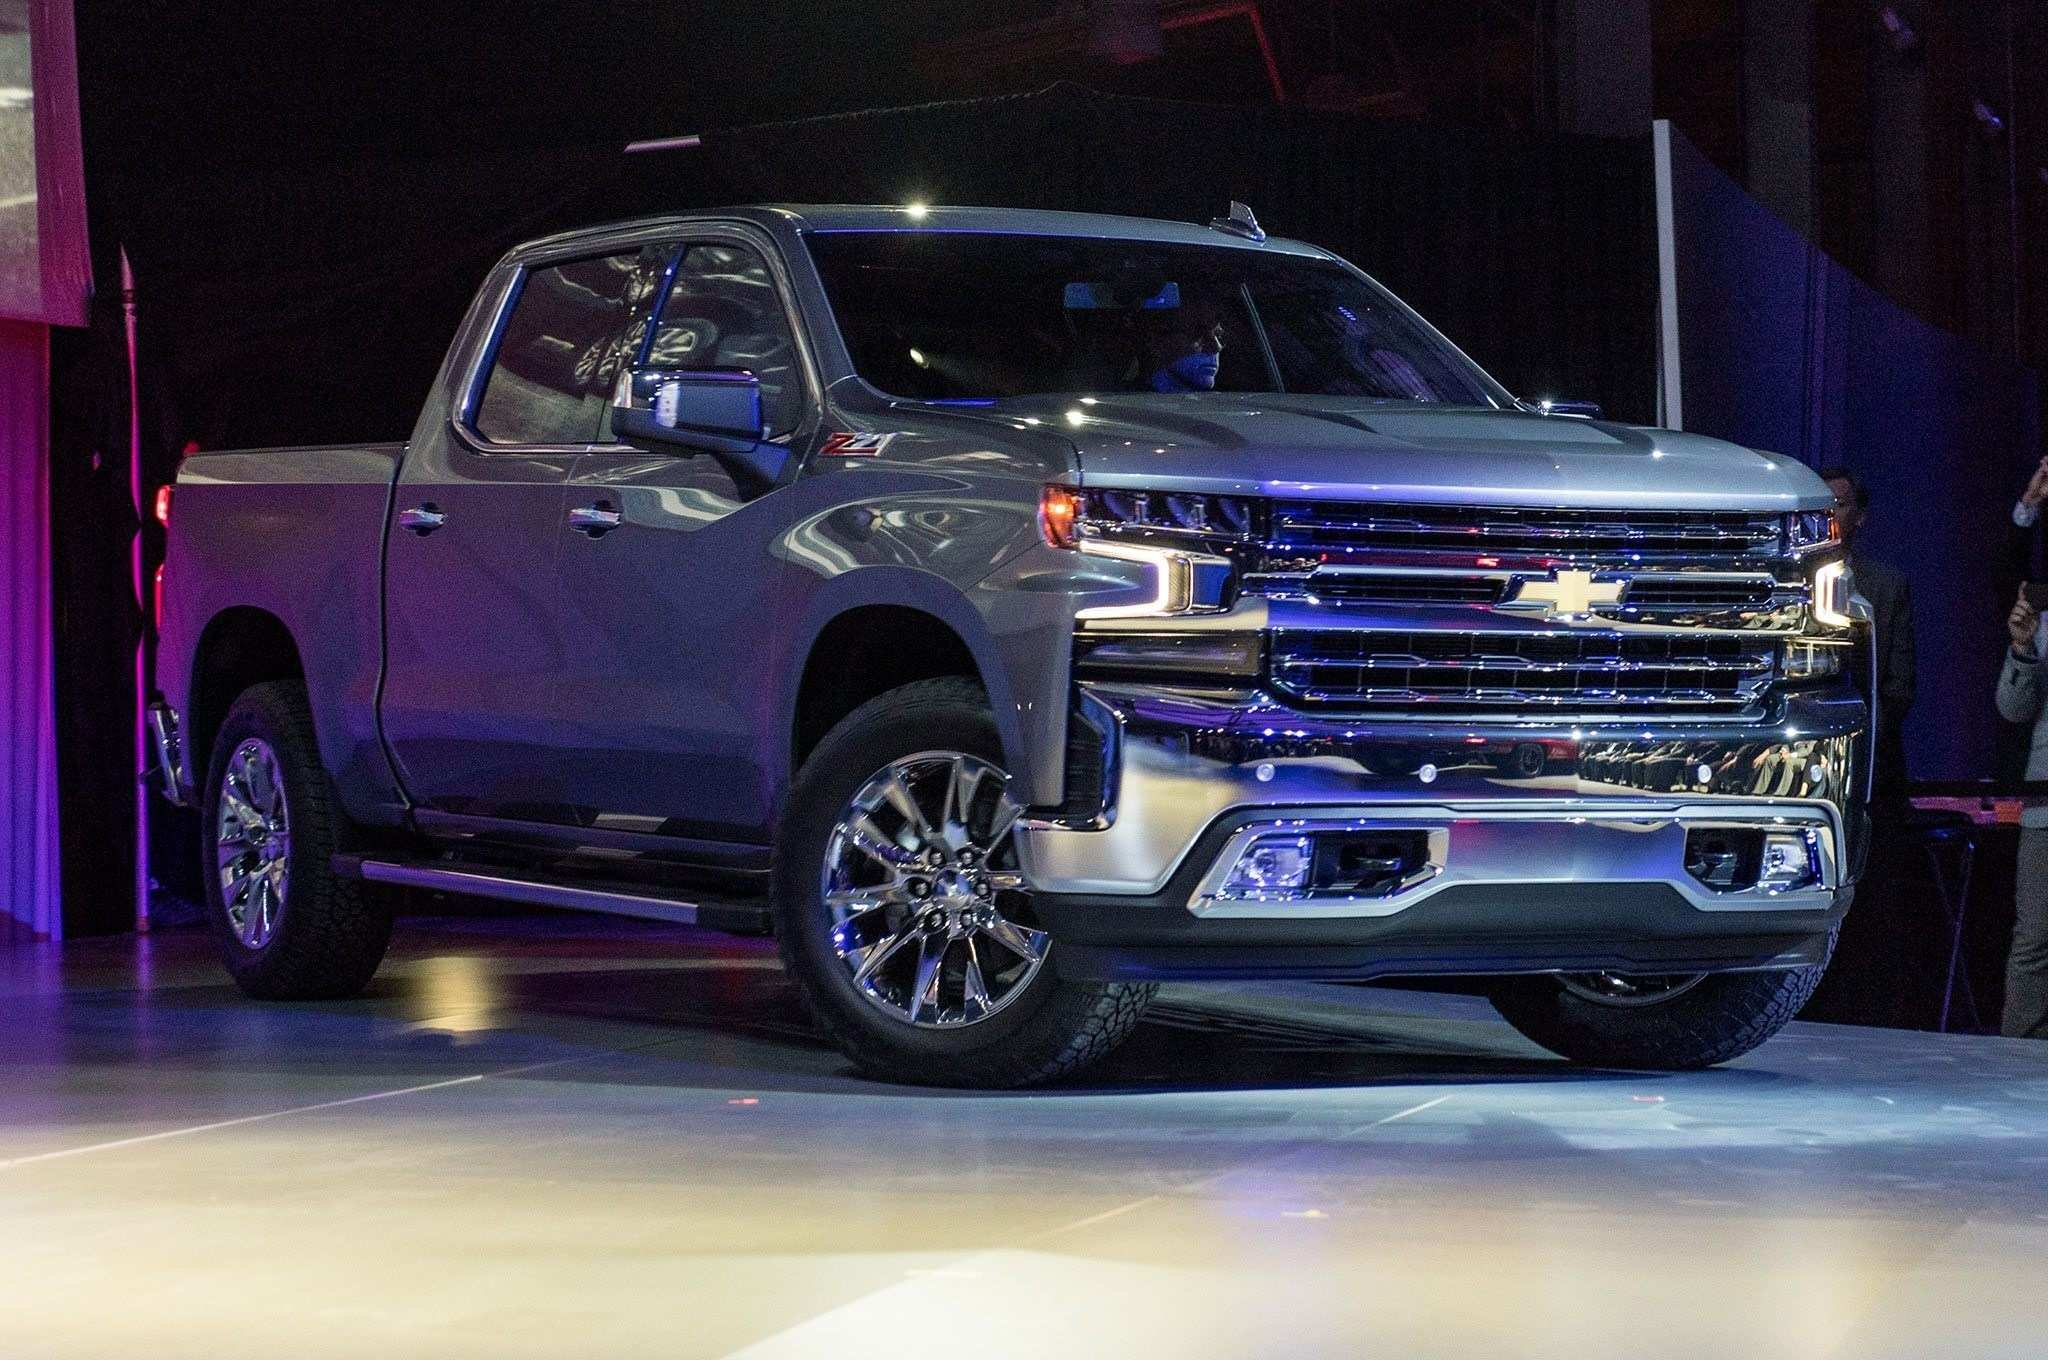 67 The New 2019 Chevrolet Silverado Interior Specs And Review Overview with New 2019 Chevrolet Silverado Interior Specs And Review